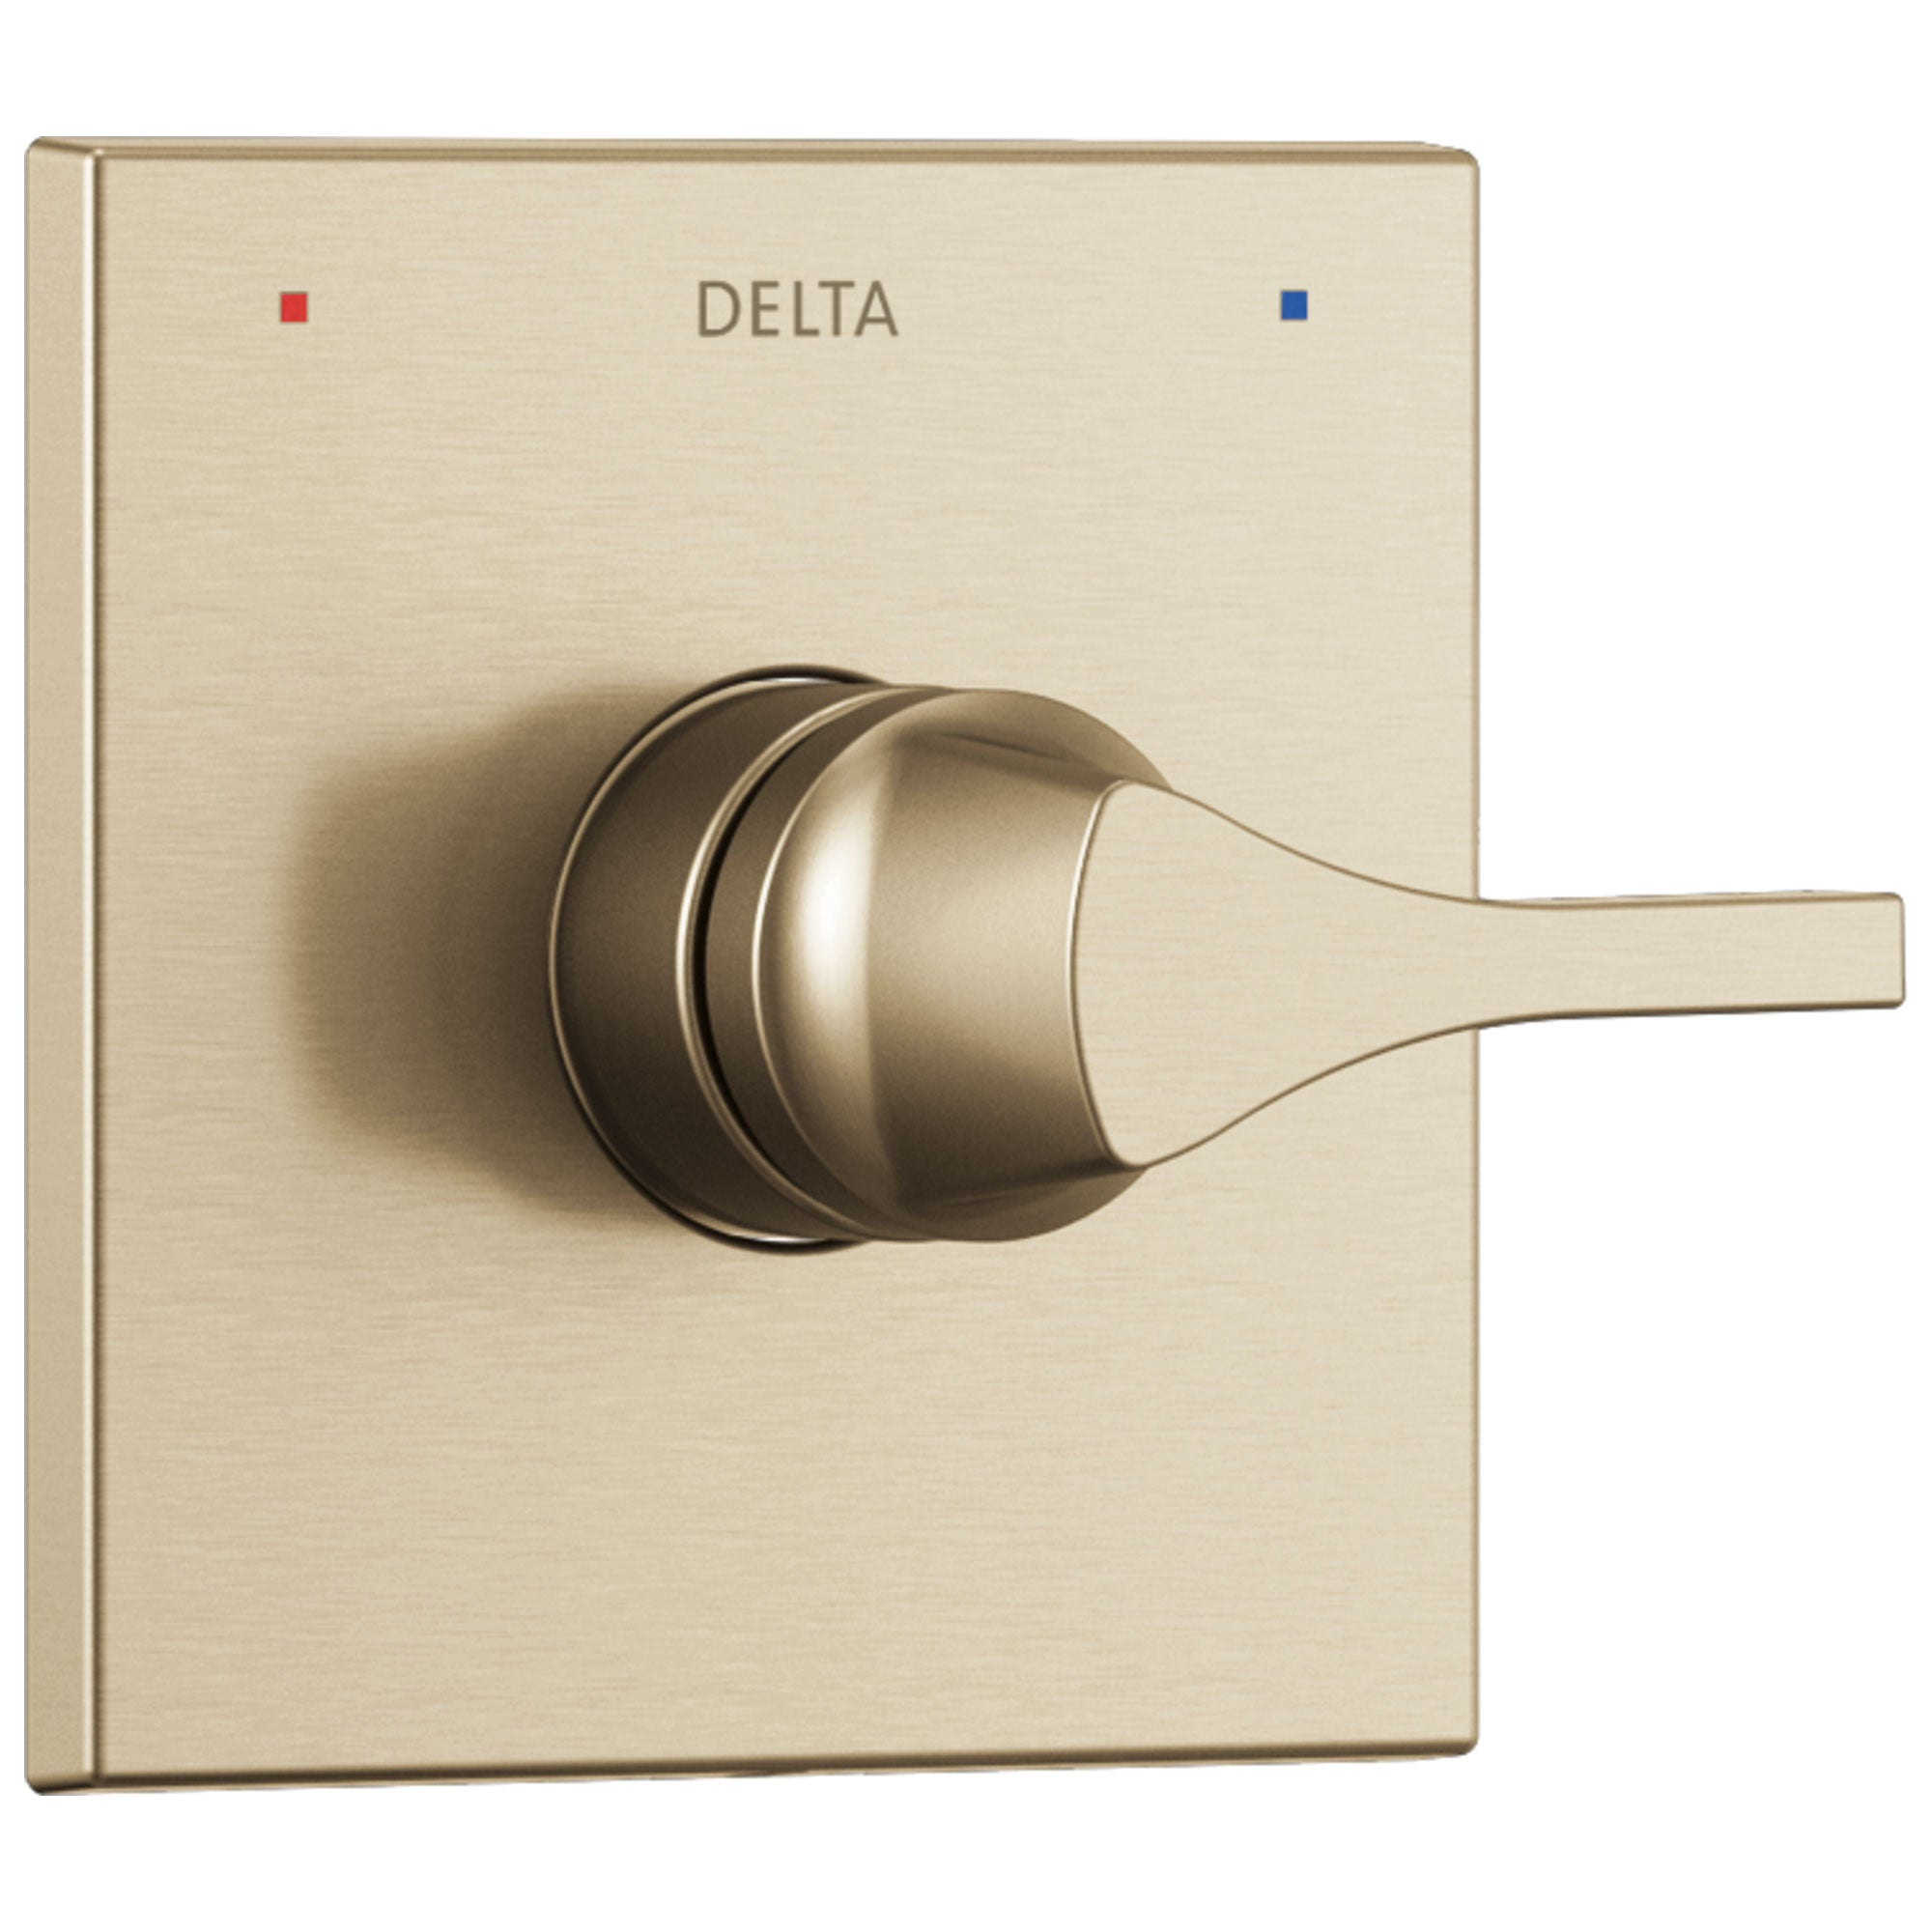 Delta Zura Champagne Bronze Finish Monitor 14 Series Shower Faucet Control Only Includes Handle, Cartridge, and Valve with Stops D3643V